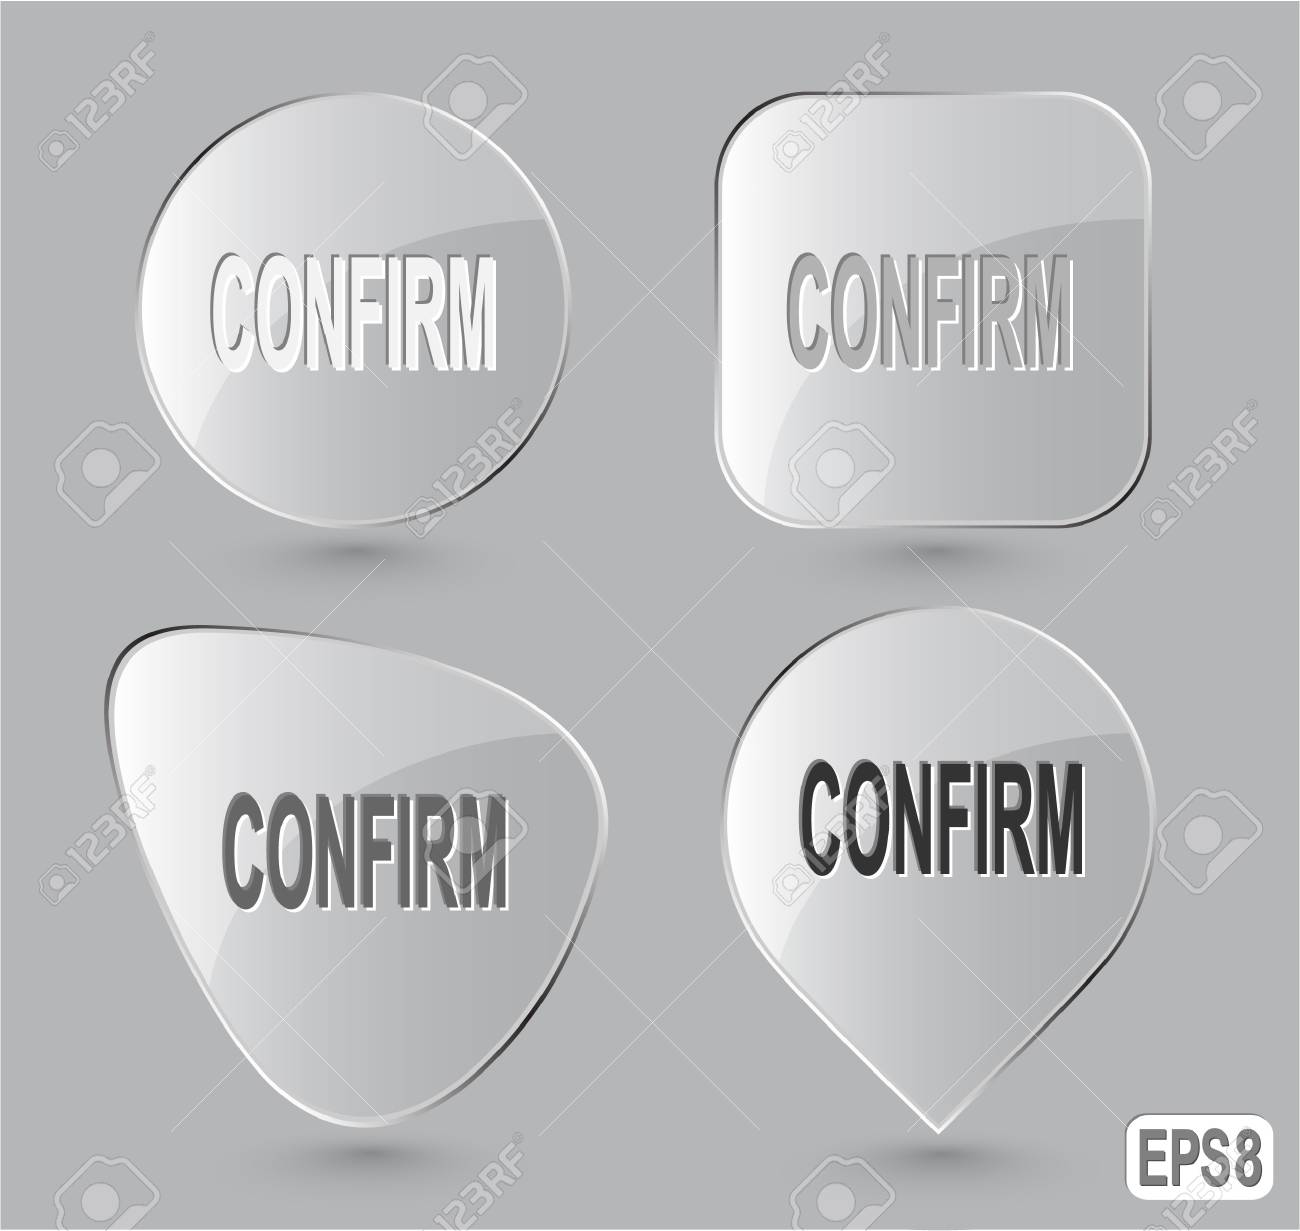 Confirm. Glass buttons. Stock Photo - 15590610